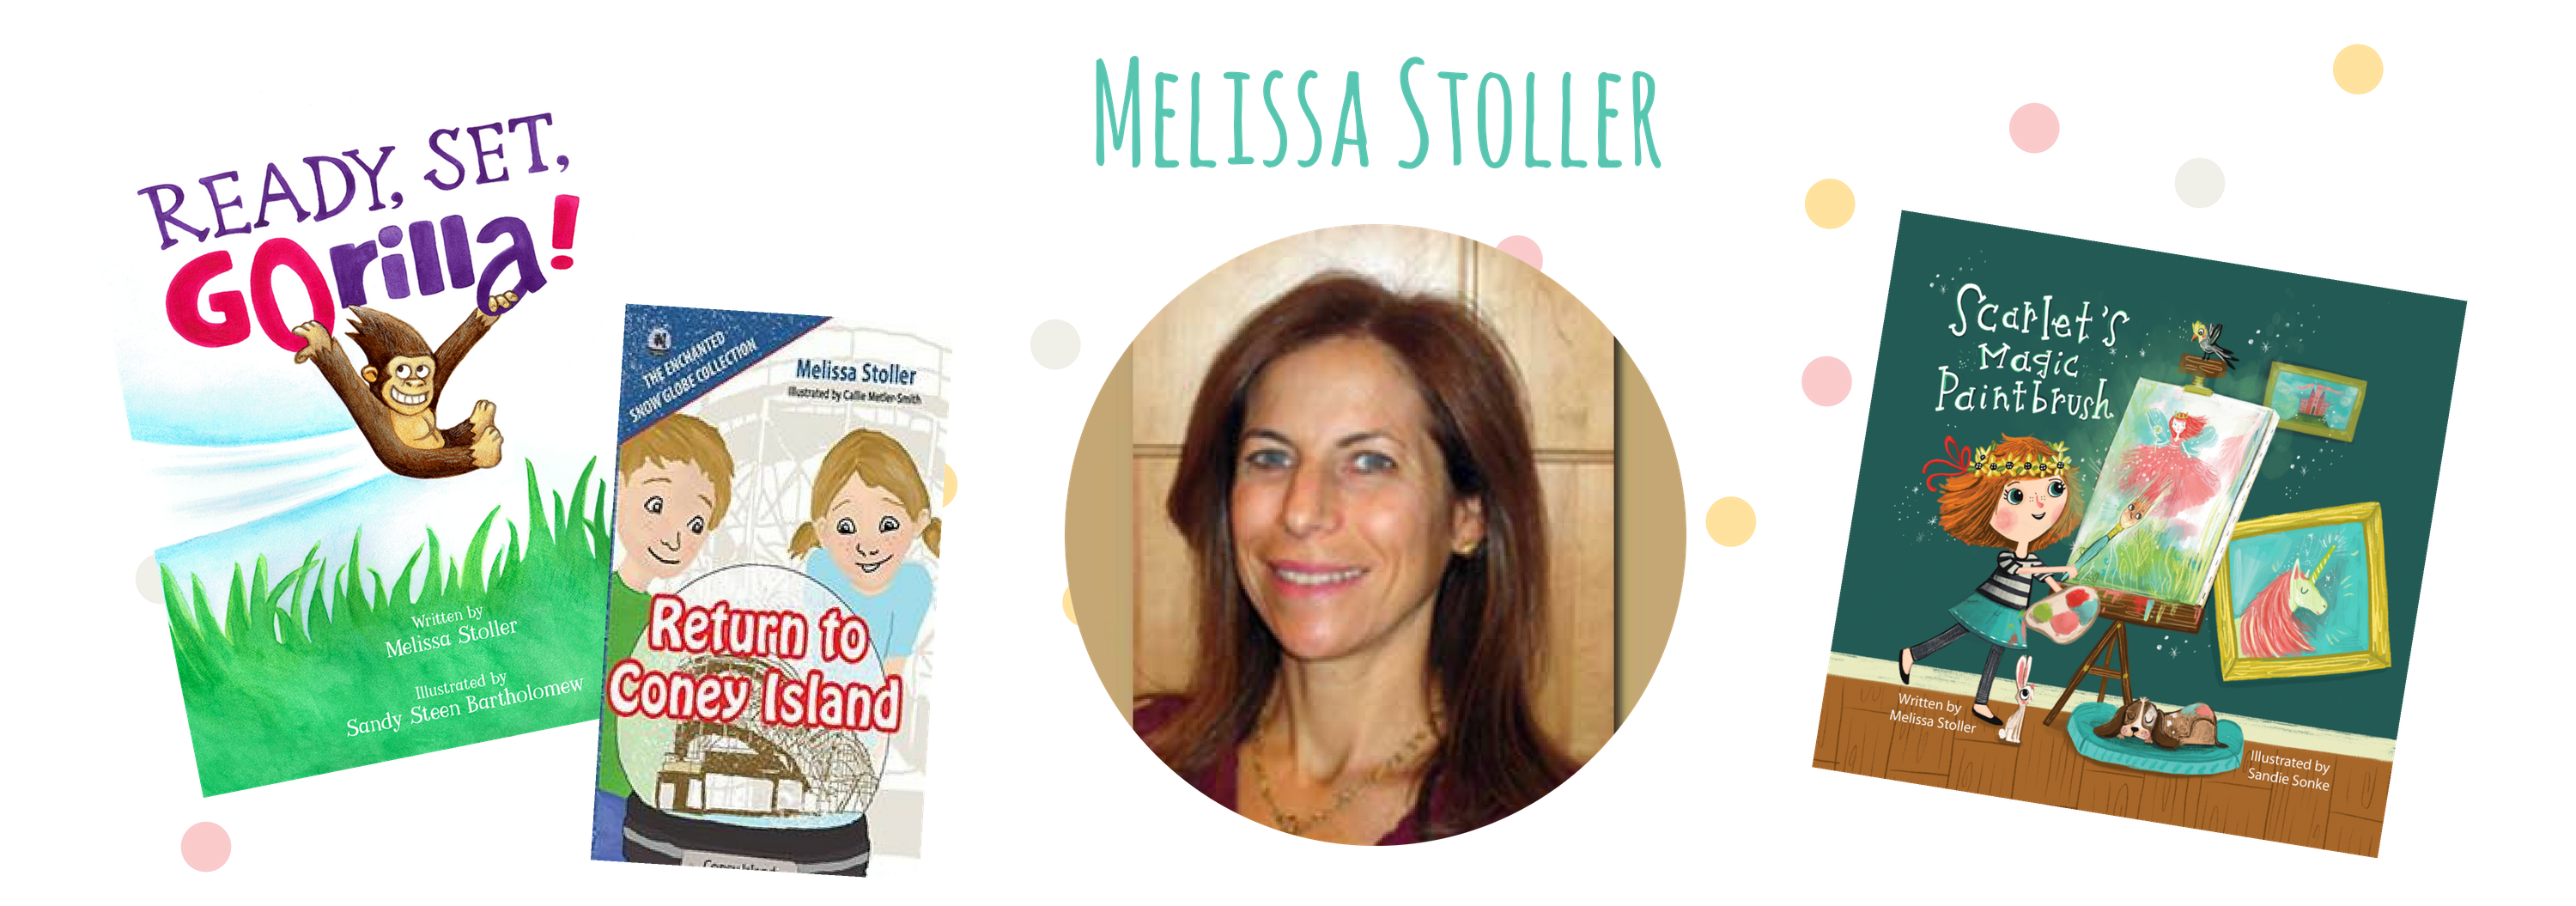 Melissa Stoller for Children's Book Academy